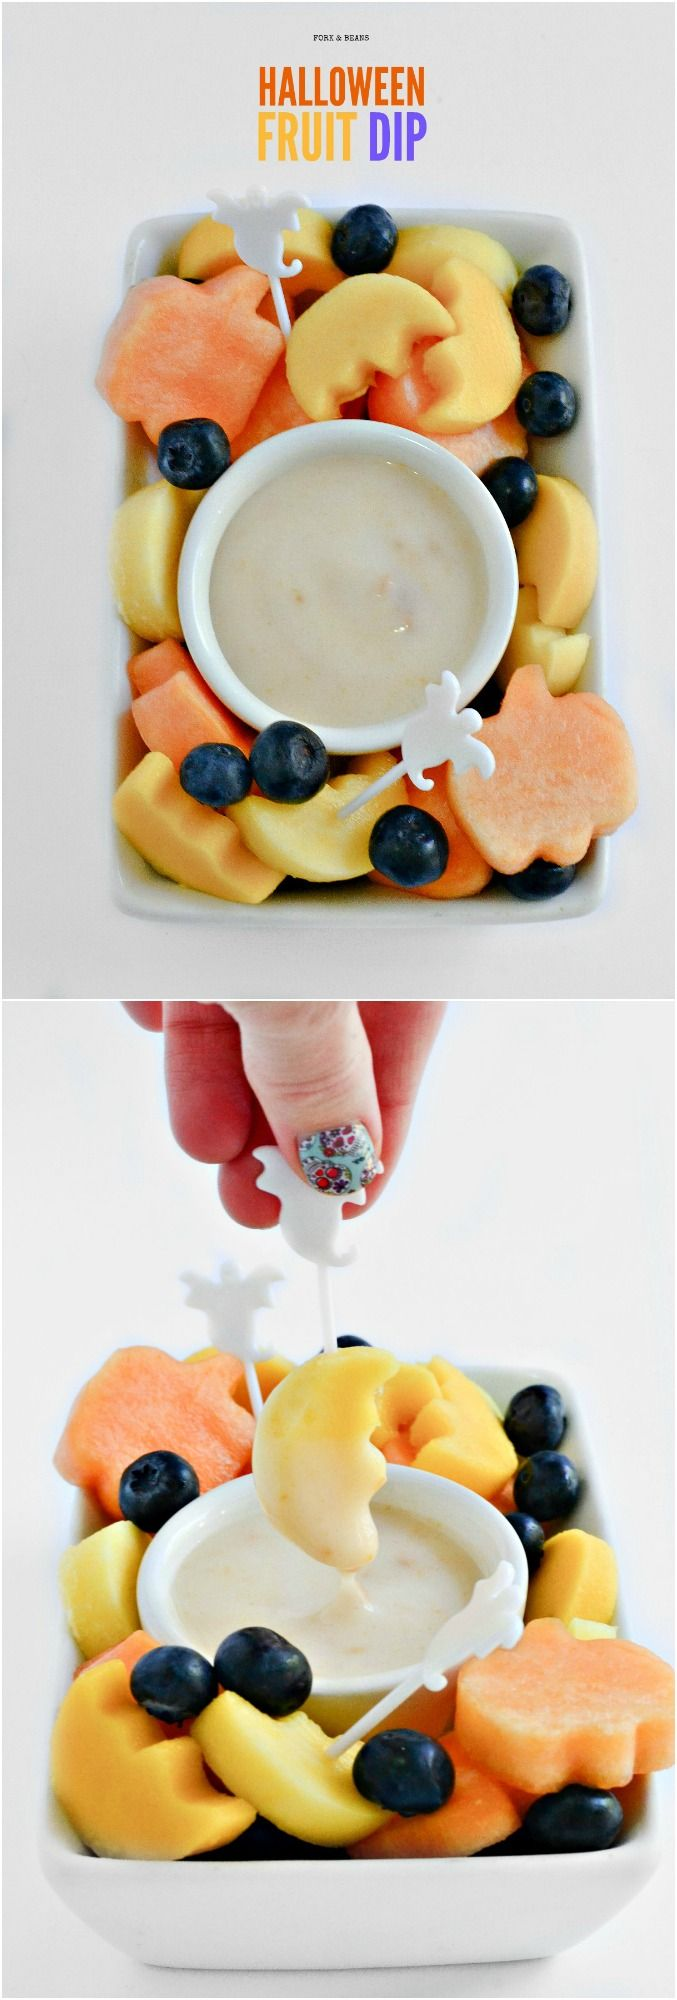 Fruit, cut up in Halloween-inspired shapes, dipped into a #vegan coconut yogurt and peanut butter dip. #Halloween doesn't get any easier than this!